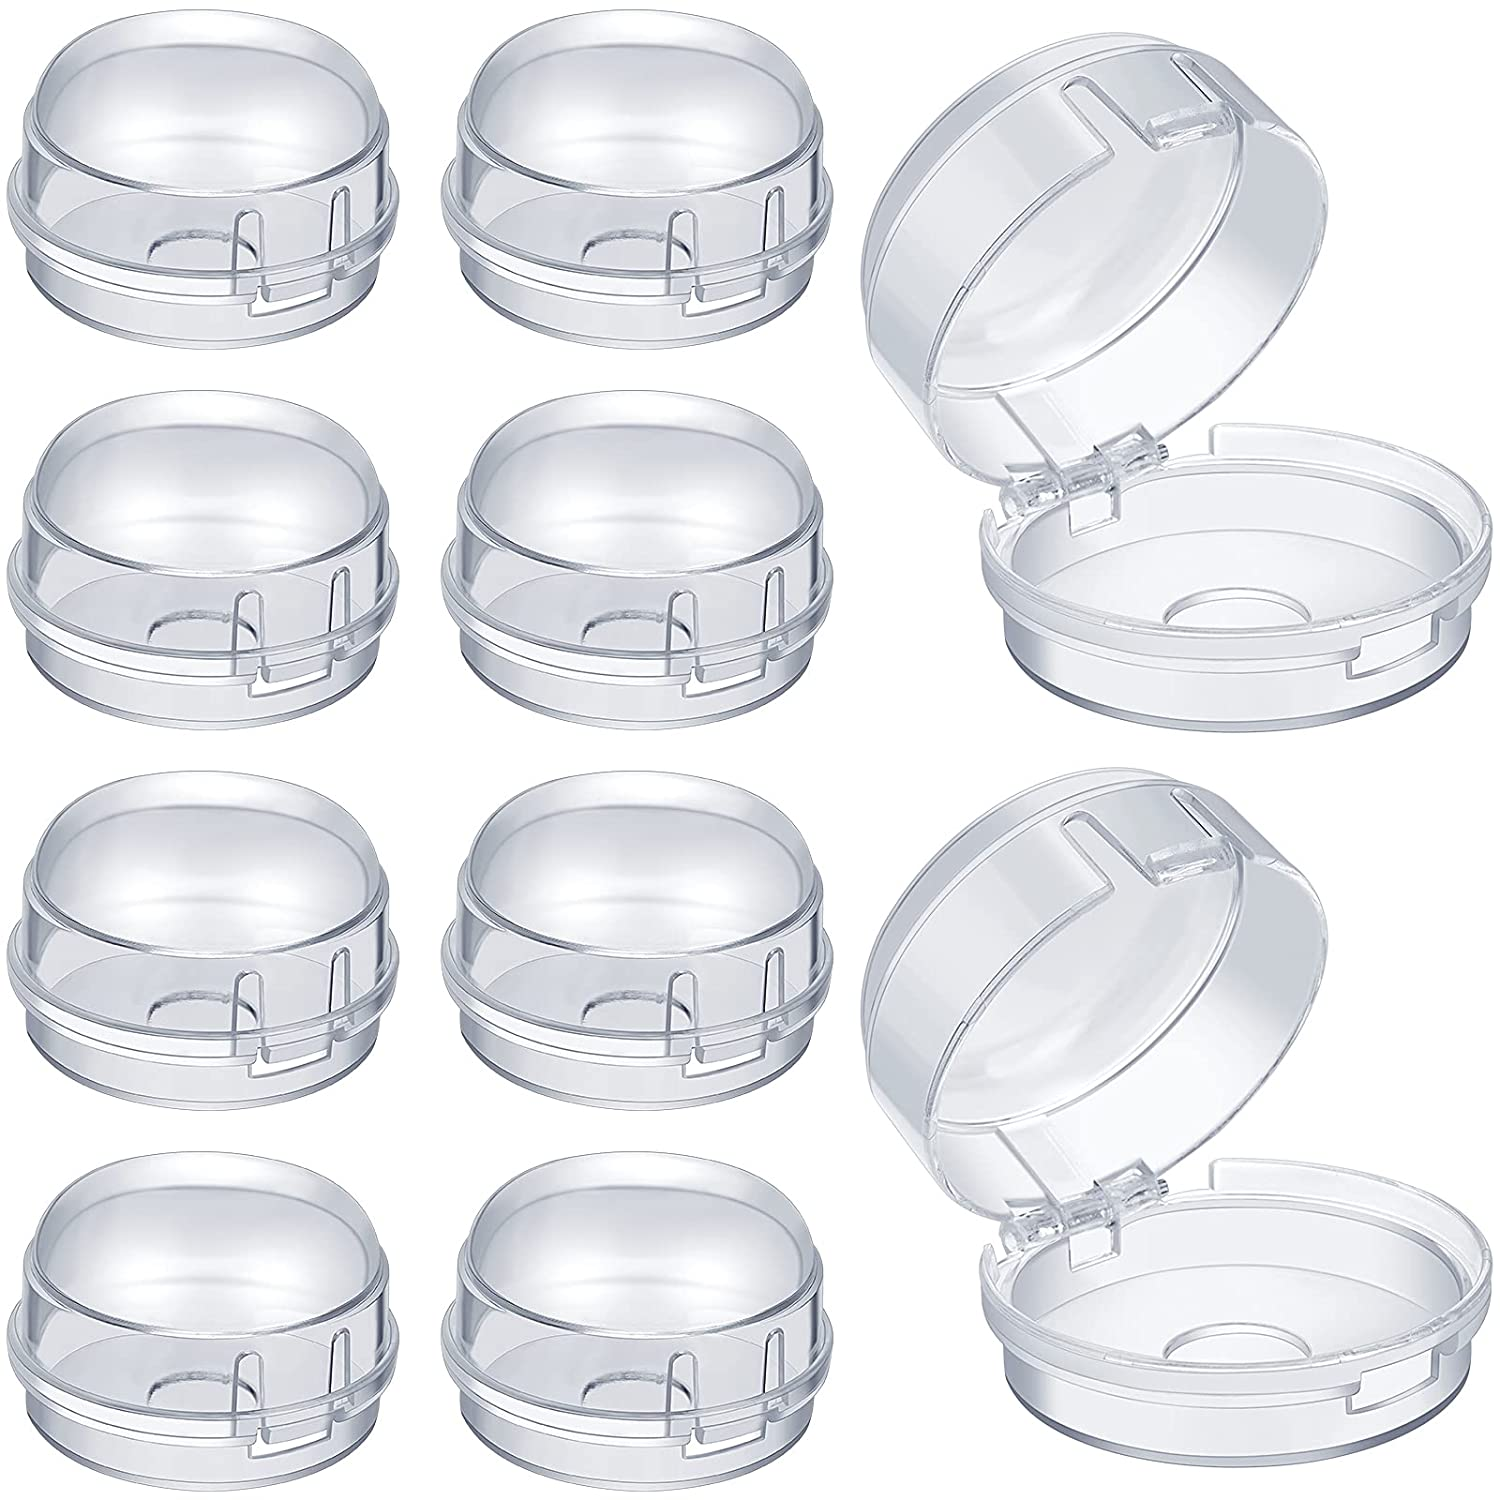 10 Pieces Stove Knob Covers Kitchen Stove Gas Knob Covers Safety Stove Knob Covers for Kids Baby Toddler (Clear, 2 cm Hole)